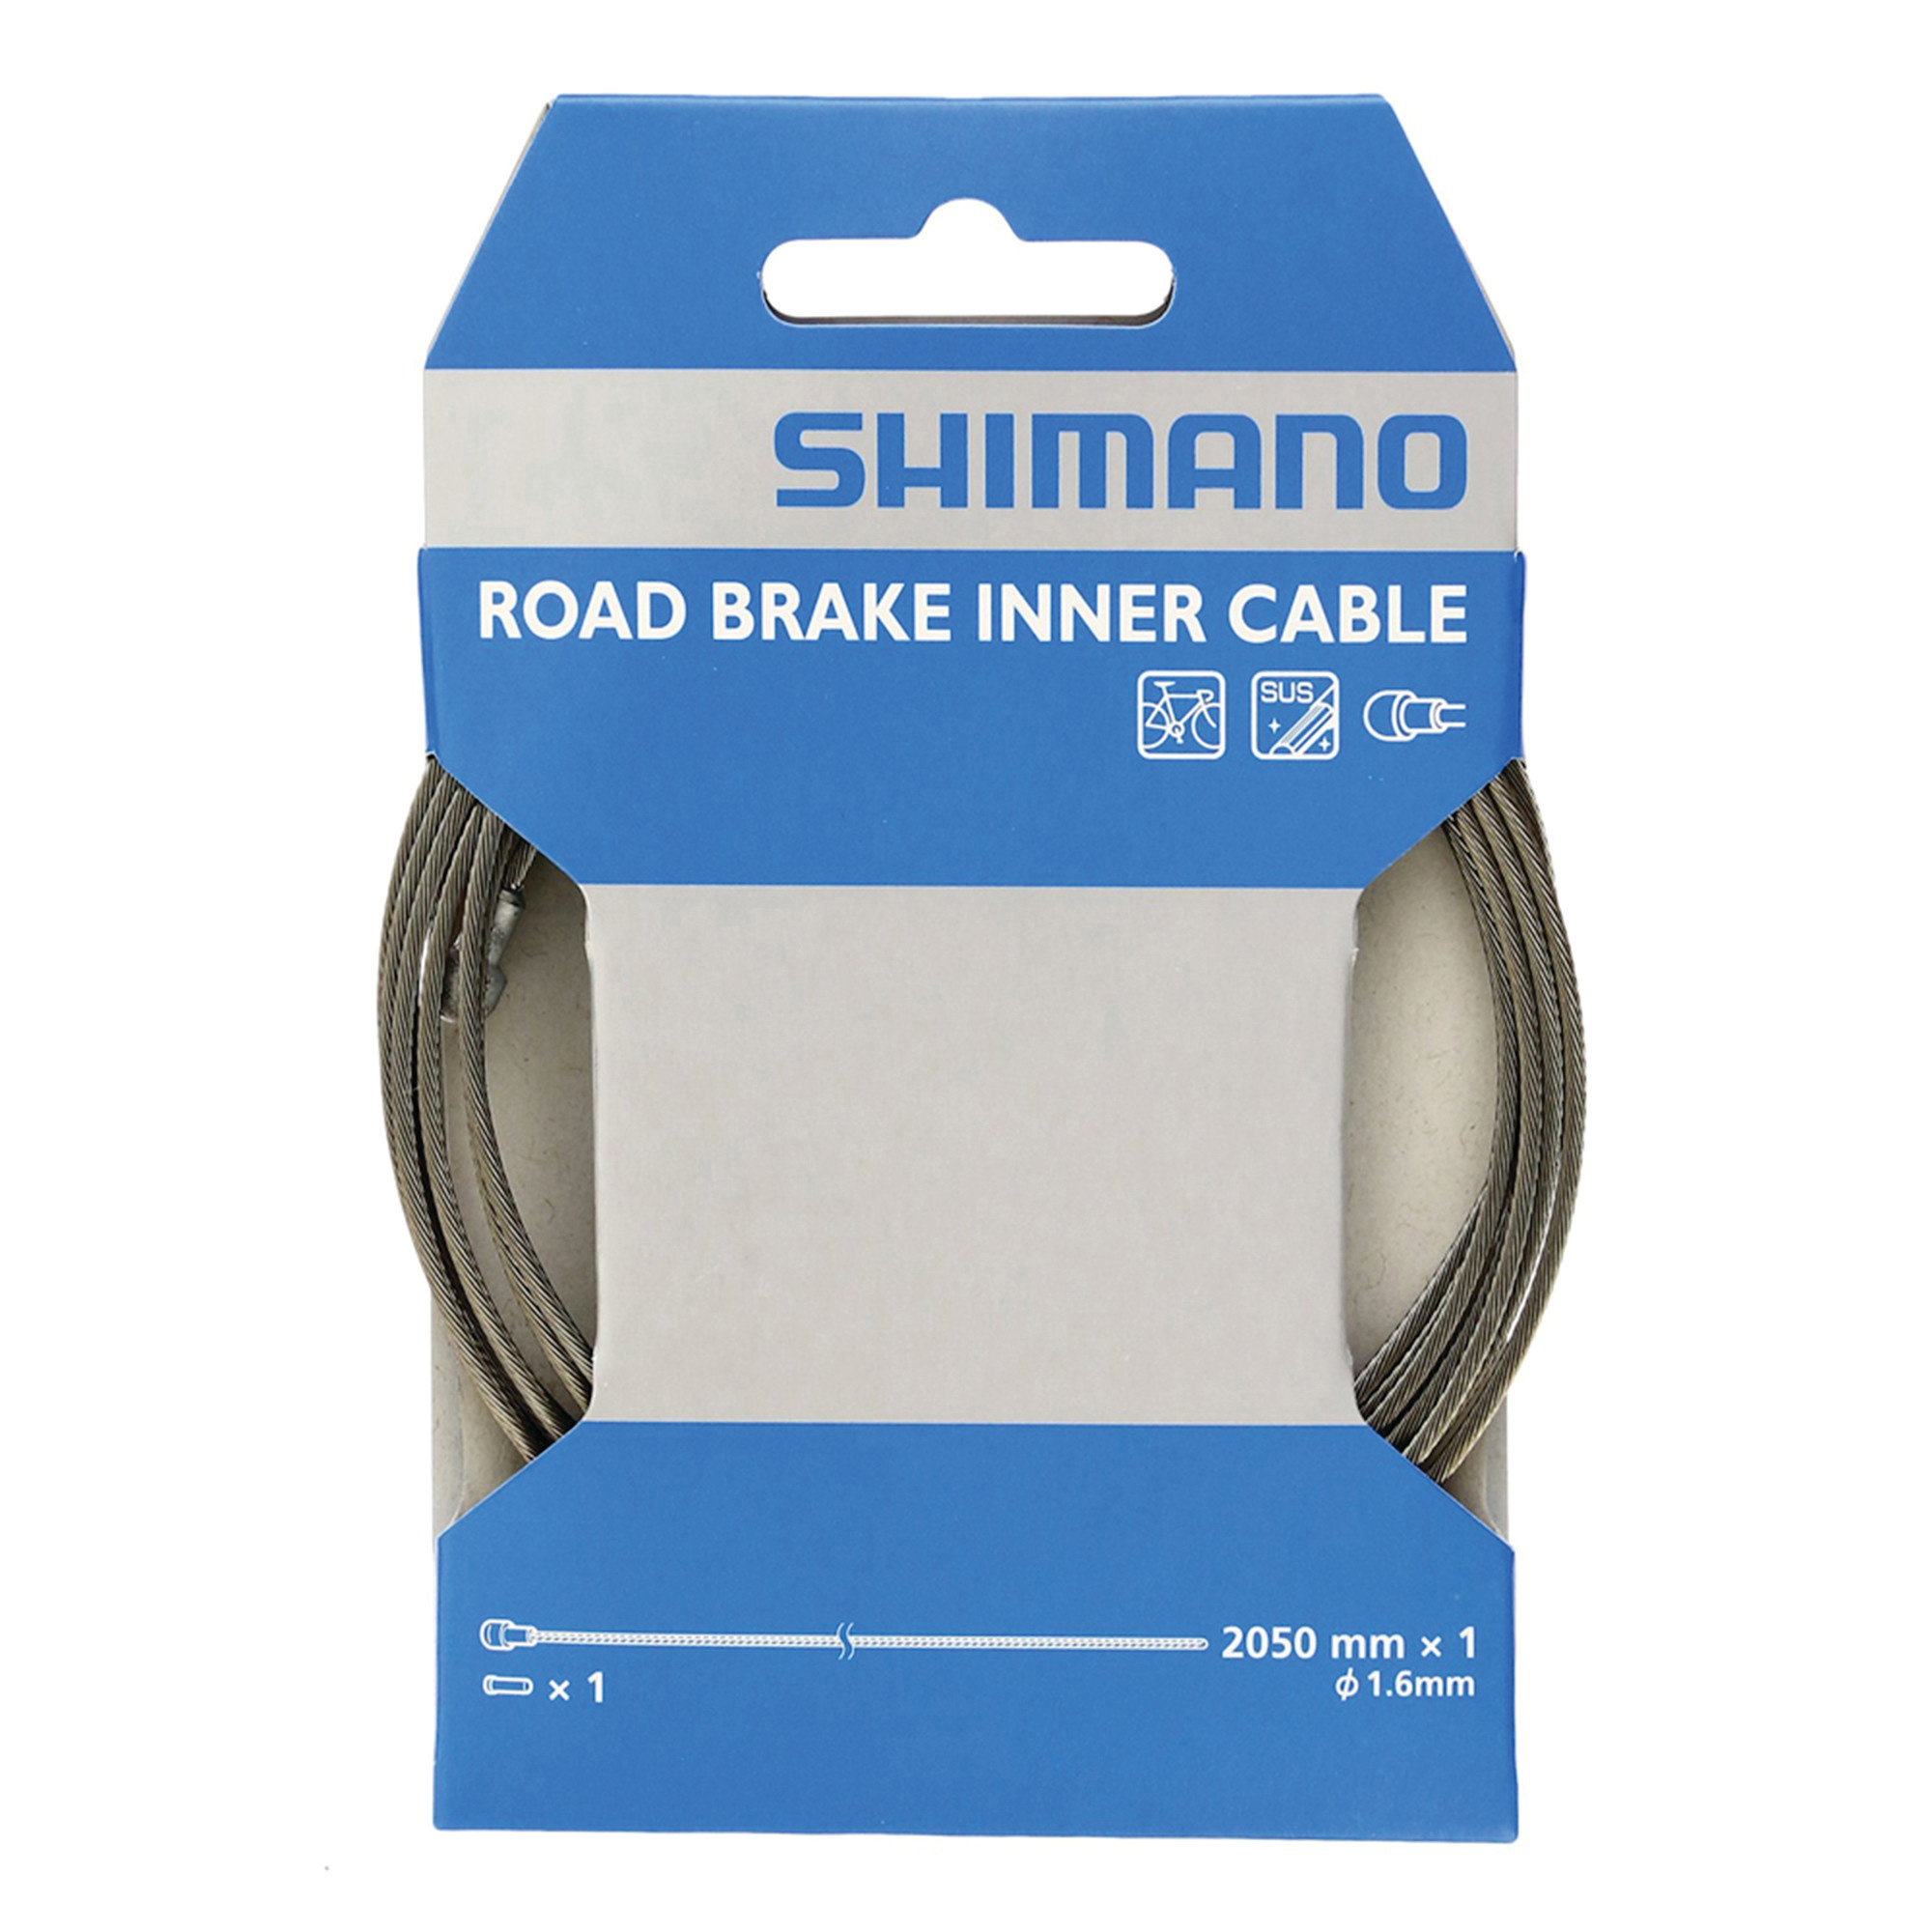 Shimano Shimano, Brake cable, Stainless, MTB, 1.6x3500mm, Unit